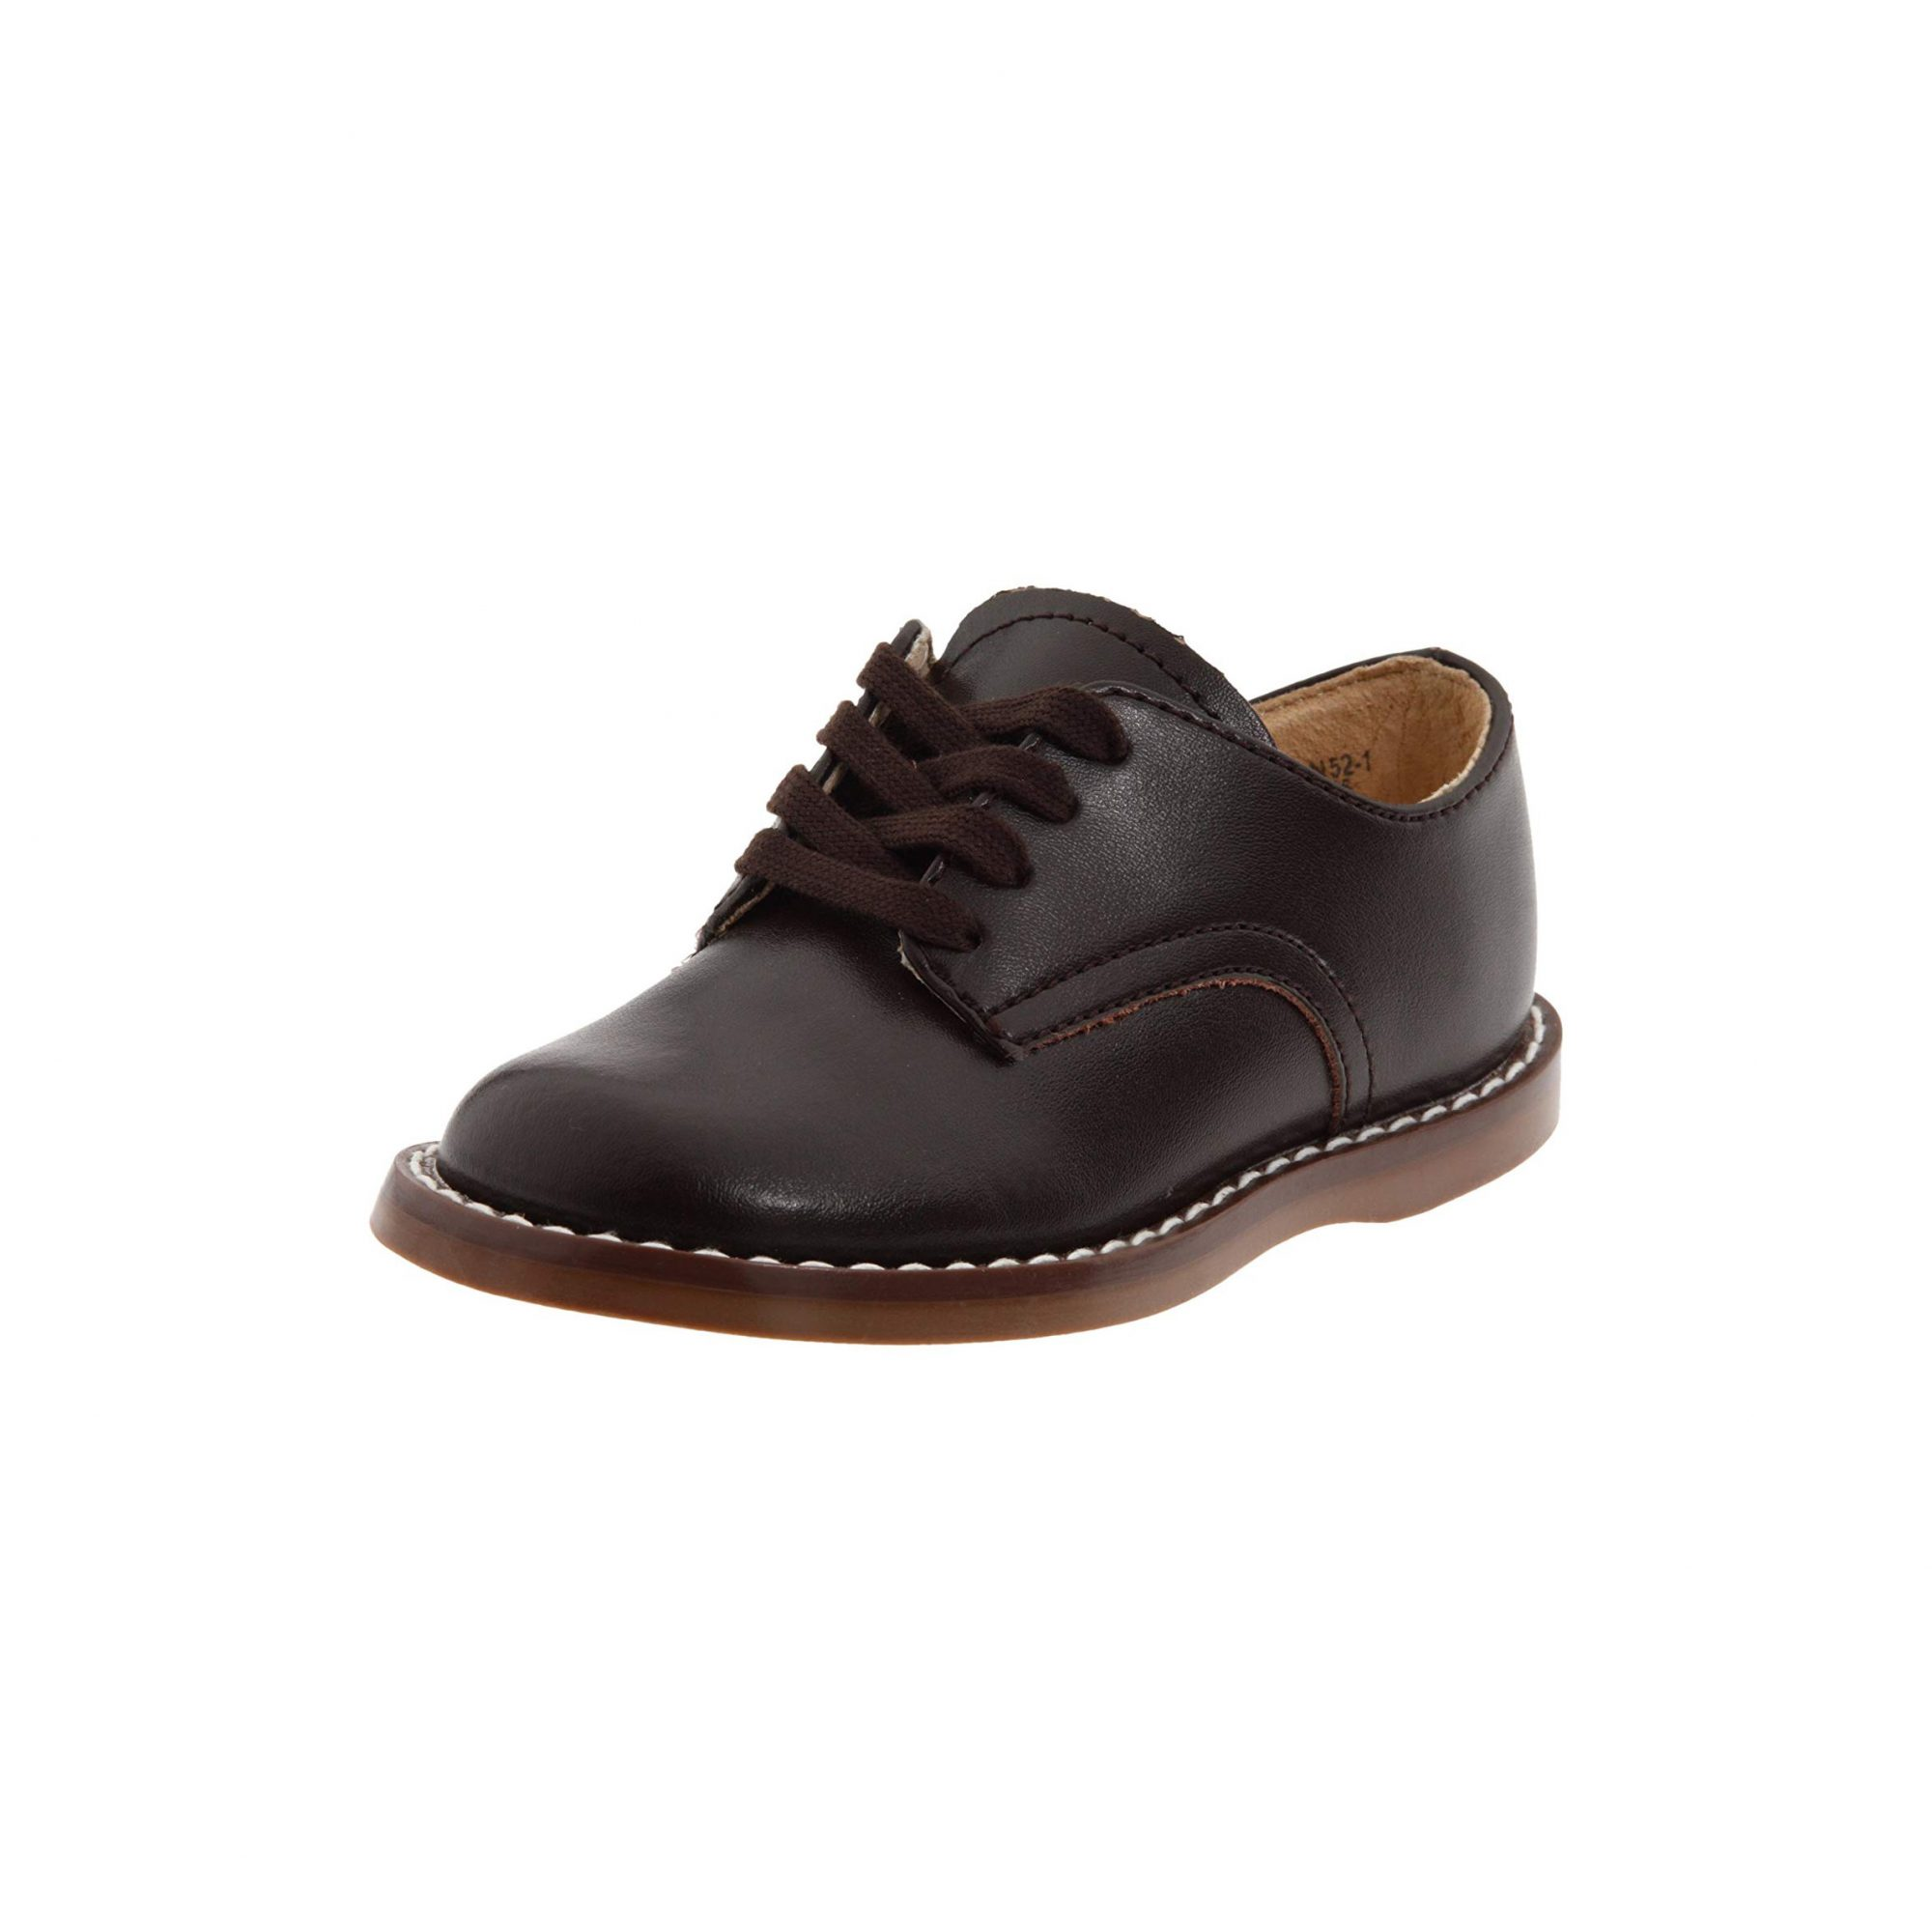 ring bearer shoes black leather oxford shoes